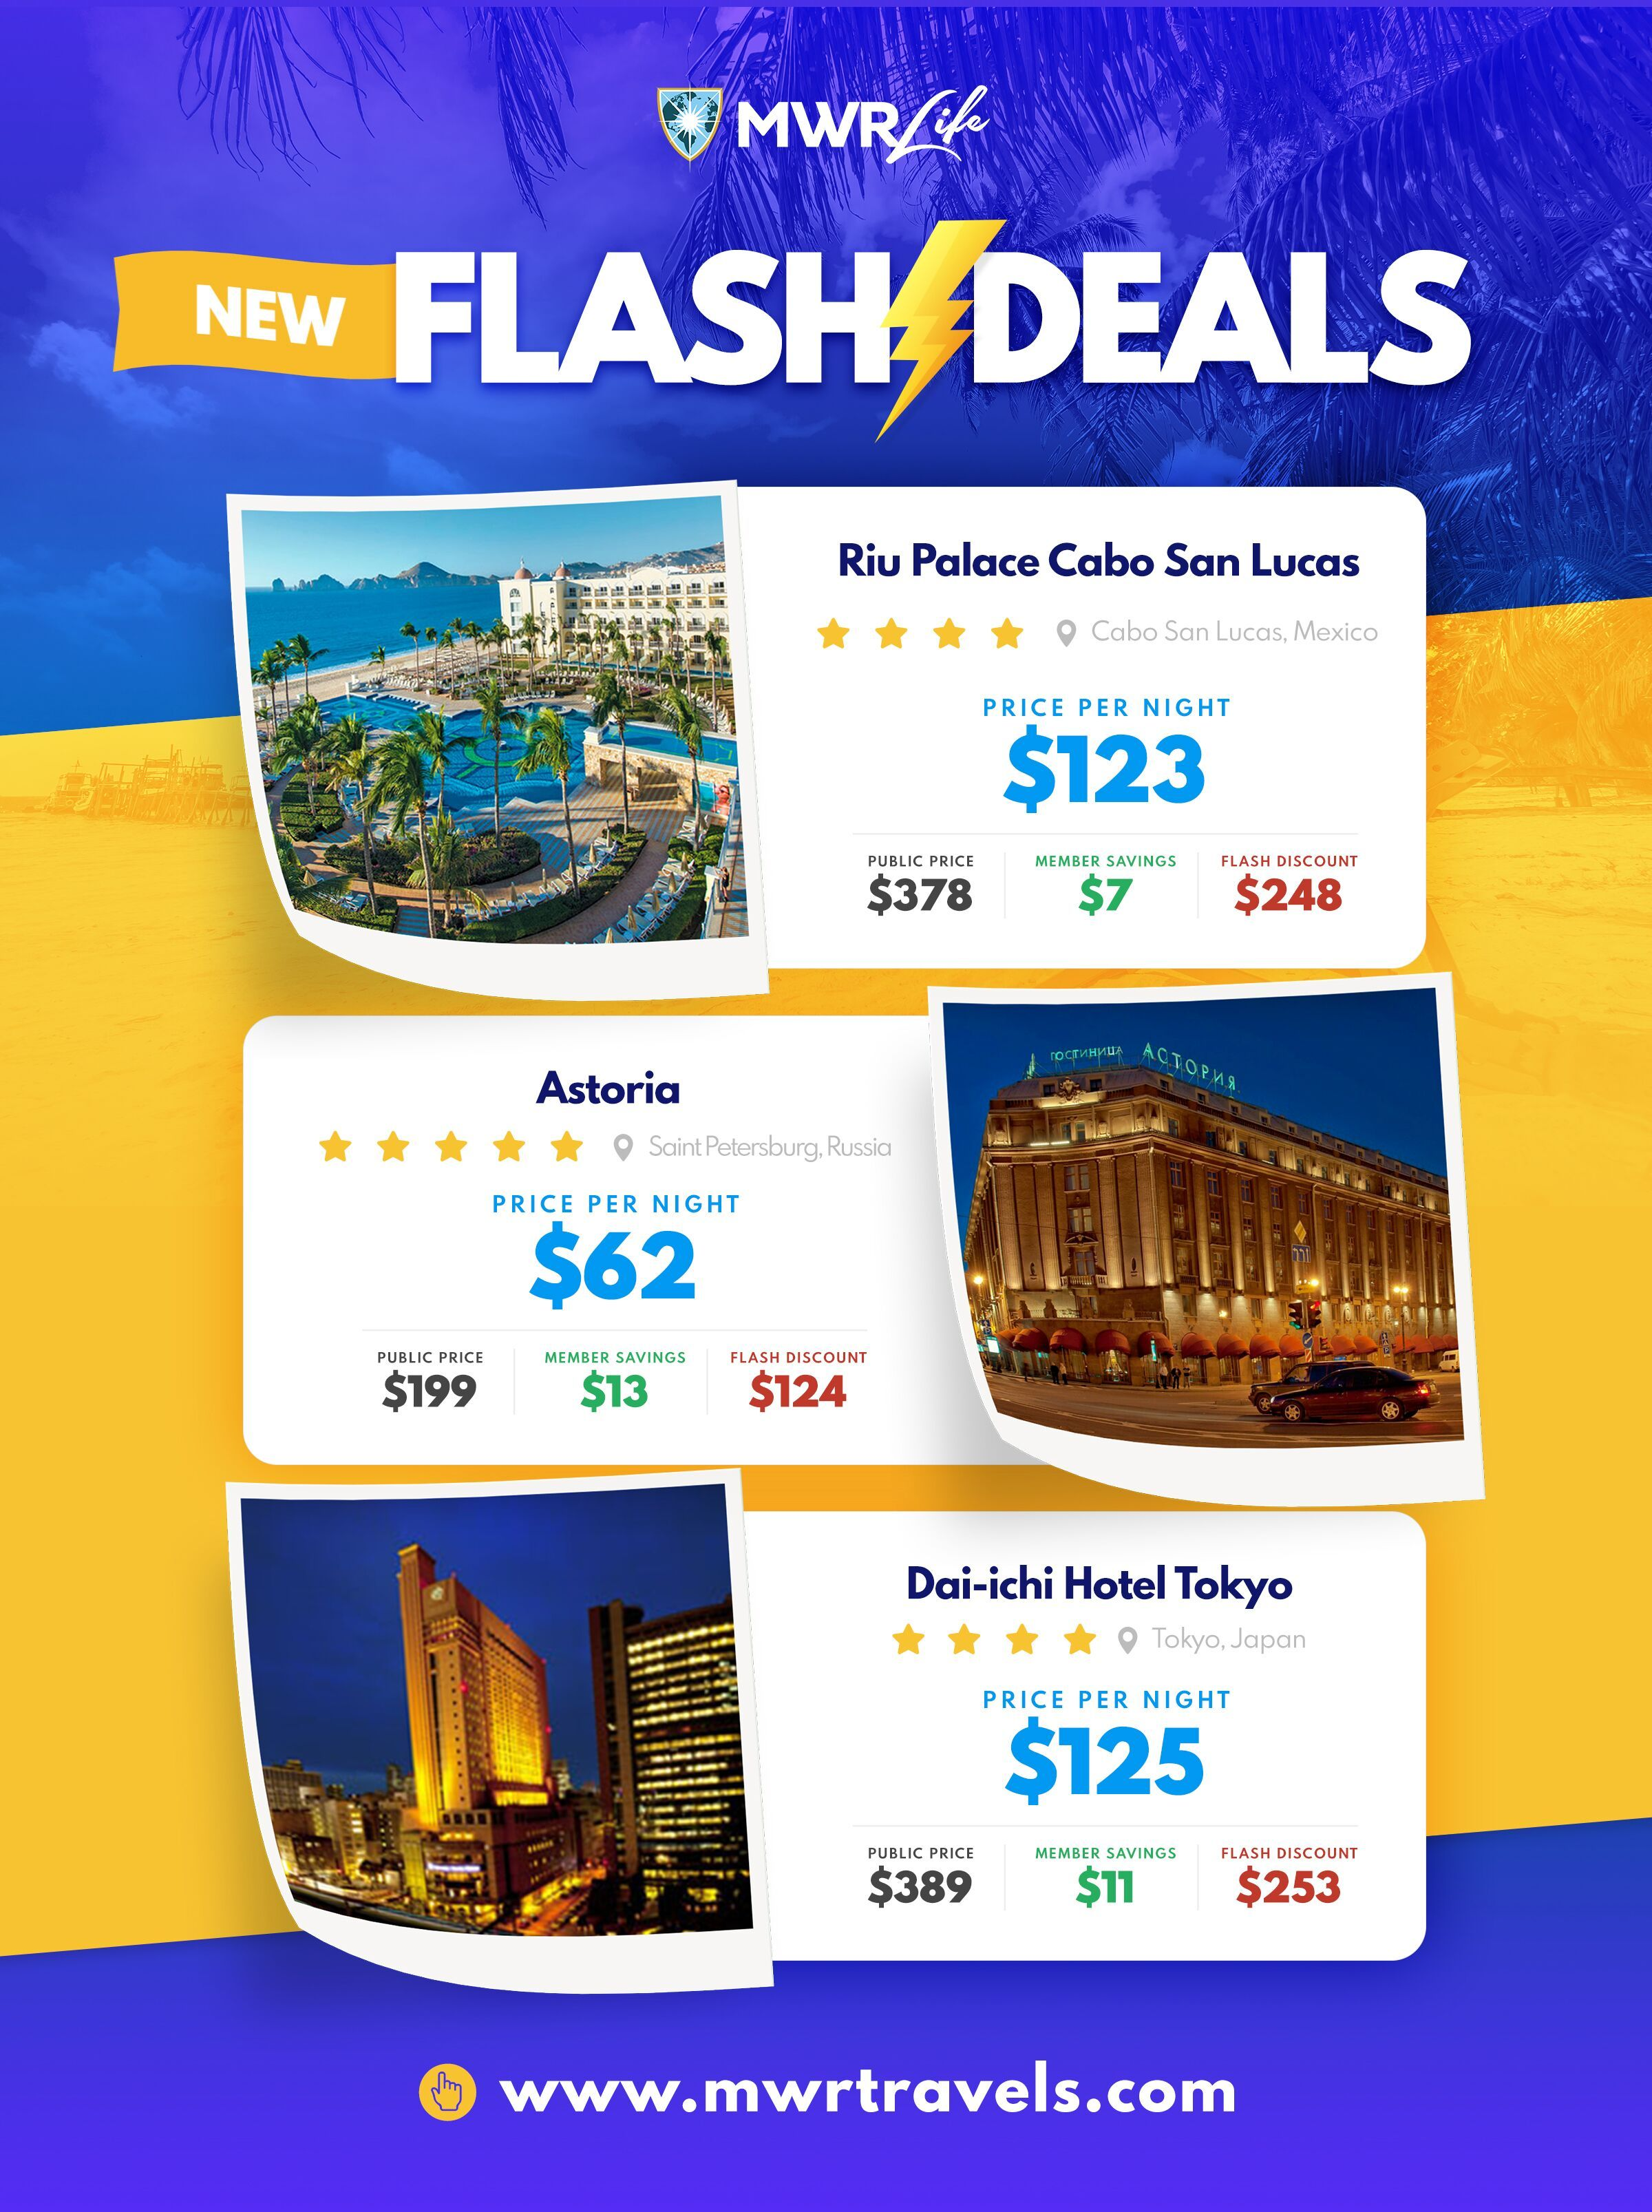 The Latest Flash Deals Are Now Available Login And